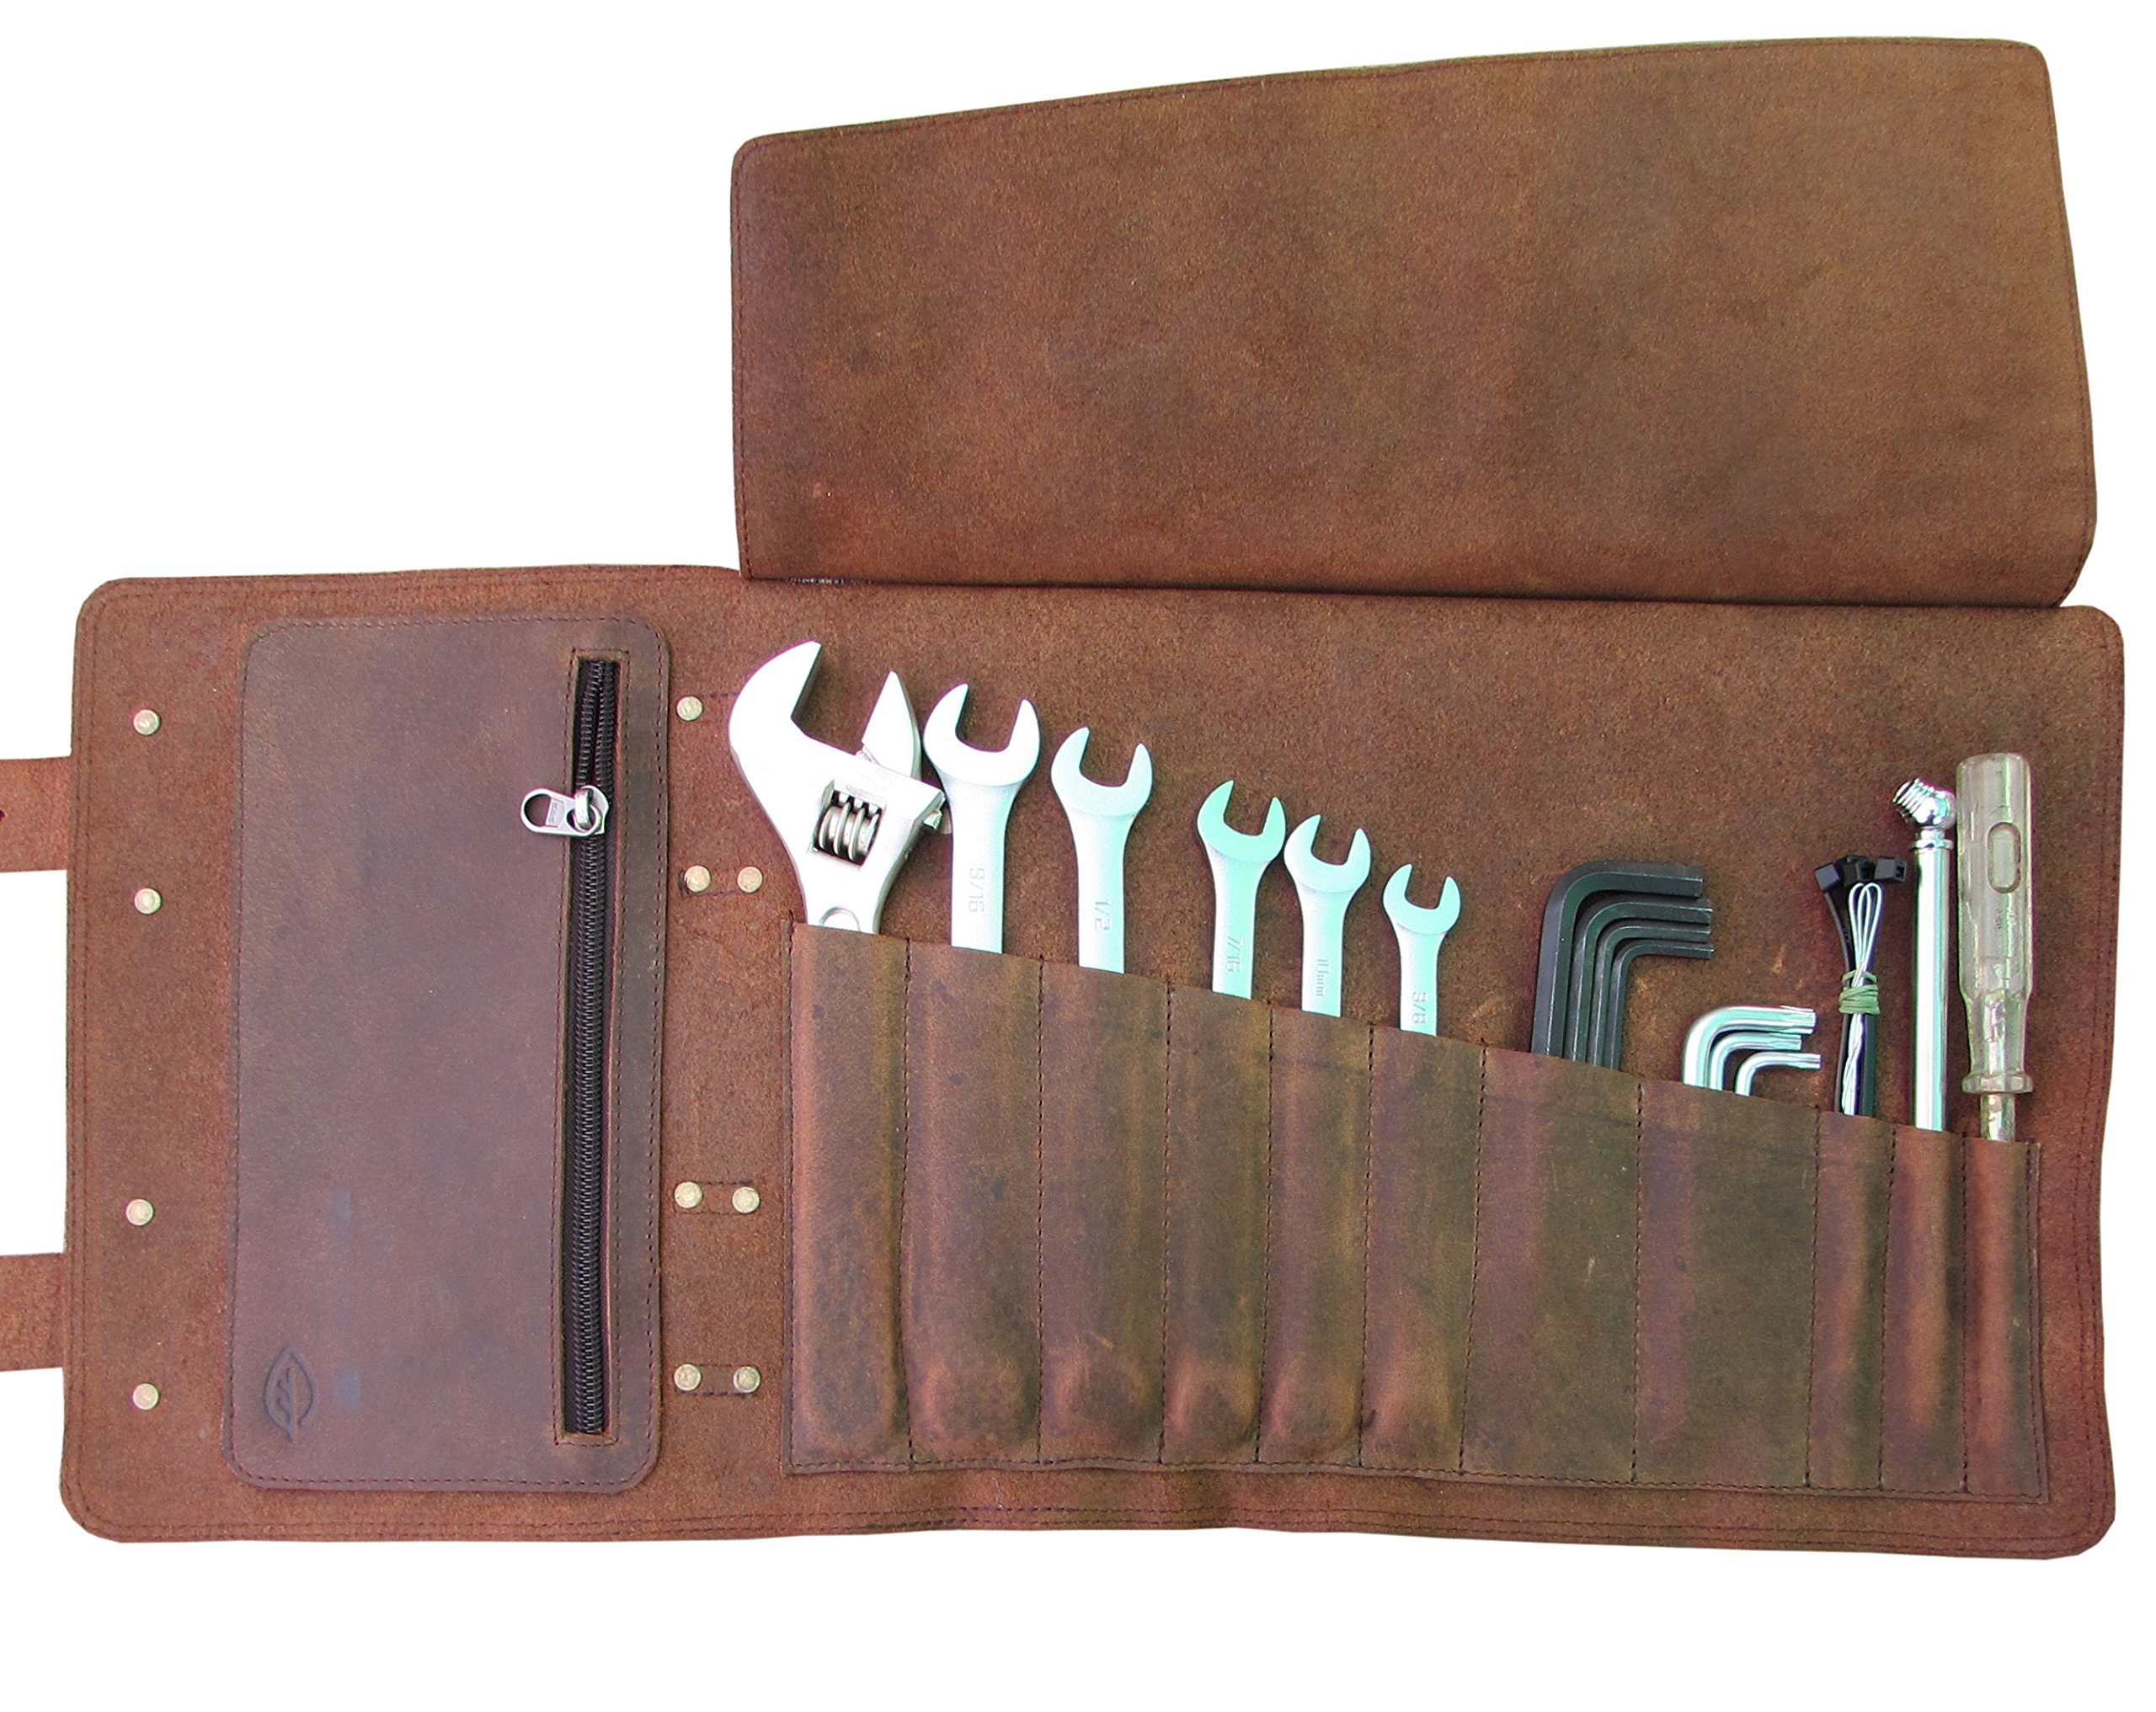 Tool Roll and Bike Bag for Harley Triumph Enfield or Workshop from One Leaf (Brass Hardware)